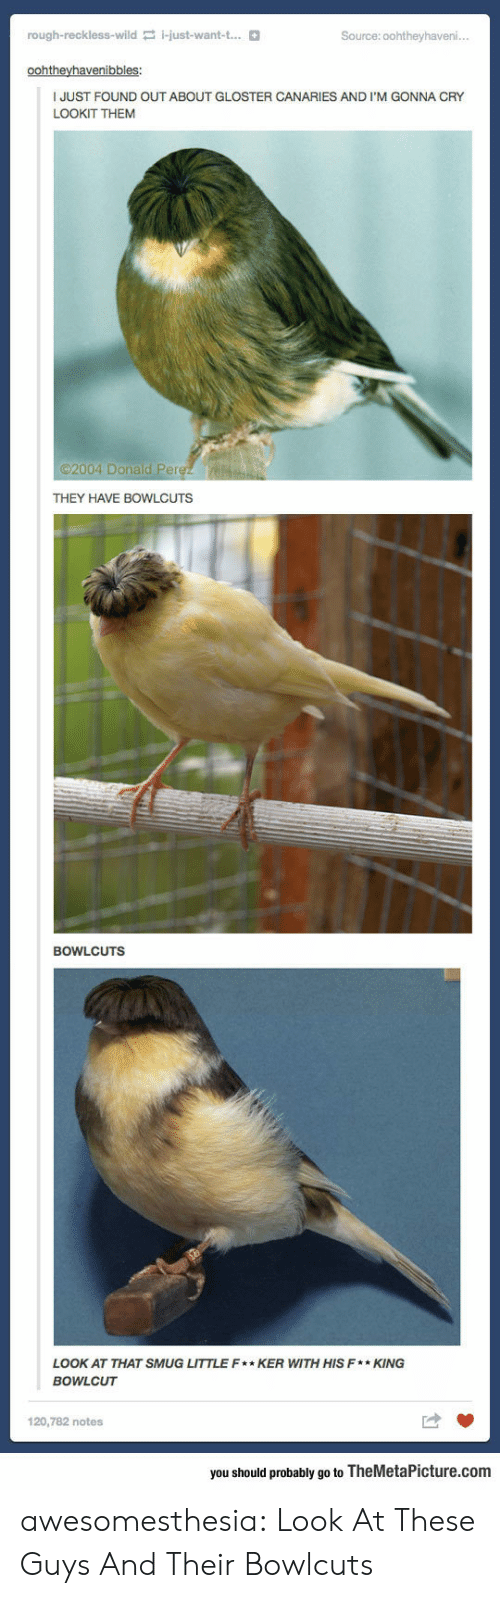 look at that: rough-reckless-wild i-just-want-t...  Source: 0ohtheyhaveni..  oohtheyhavenibbles:  JUST FOUND OUT ABOUT GLOSTER CANARIES AND I'M GONNA CRY  LOOKIT THEM  2004 Donald Perez  THEY HAVE BOWLCUTS  BOWLCUTS  LOOK AT THAT SMUG LITTLE F* KER WITH HIS F*KING  BOWLCUT  120,782 notes  you should probably go to TheMetaPicture.com awesomesthesia:  Look At These Guys And Their Bowlcuts